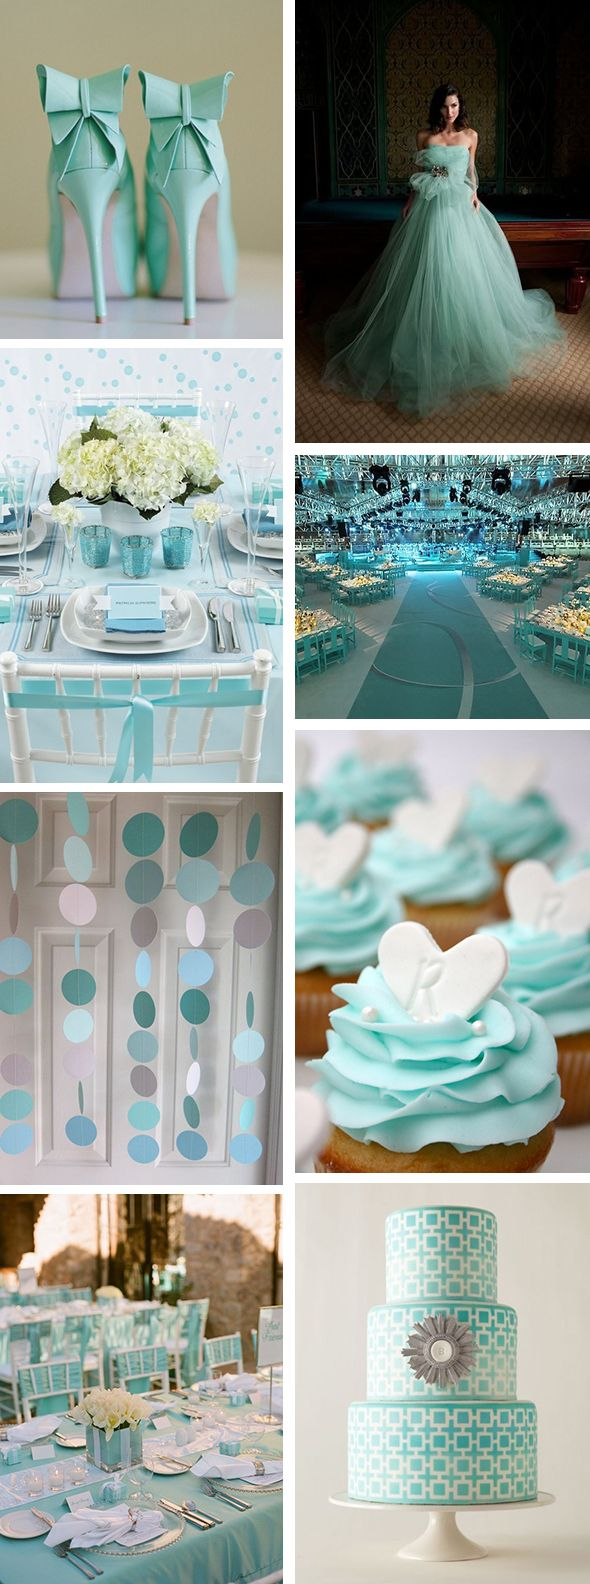 #Tiffany #Blue #Wedding … 'Wedding Guide' App ♥ Free for a limited time … https://itunes.apple.com/us/app/the-gold-wedding-planner/id498112599?ls=1=8 ♥ For more magical wedding ideas http://pinterest.com/groomsandbrides/boards/ ♥